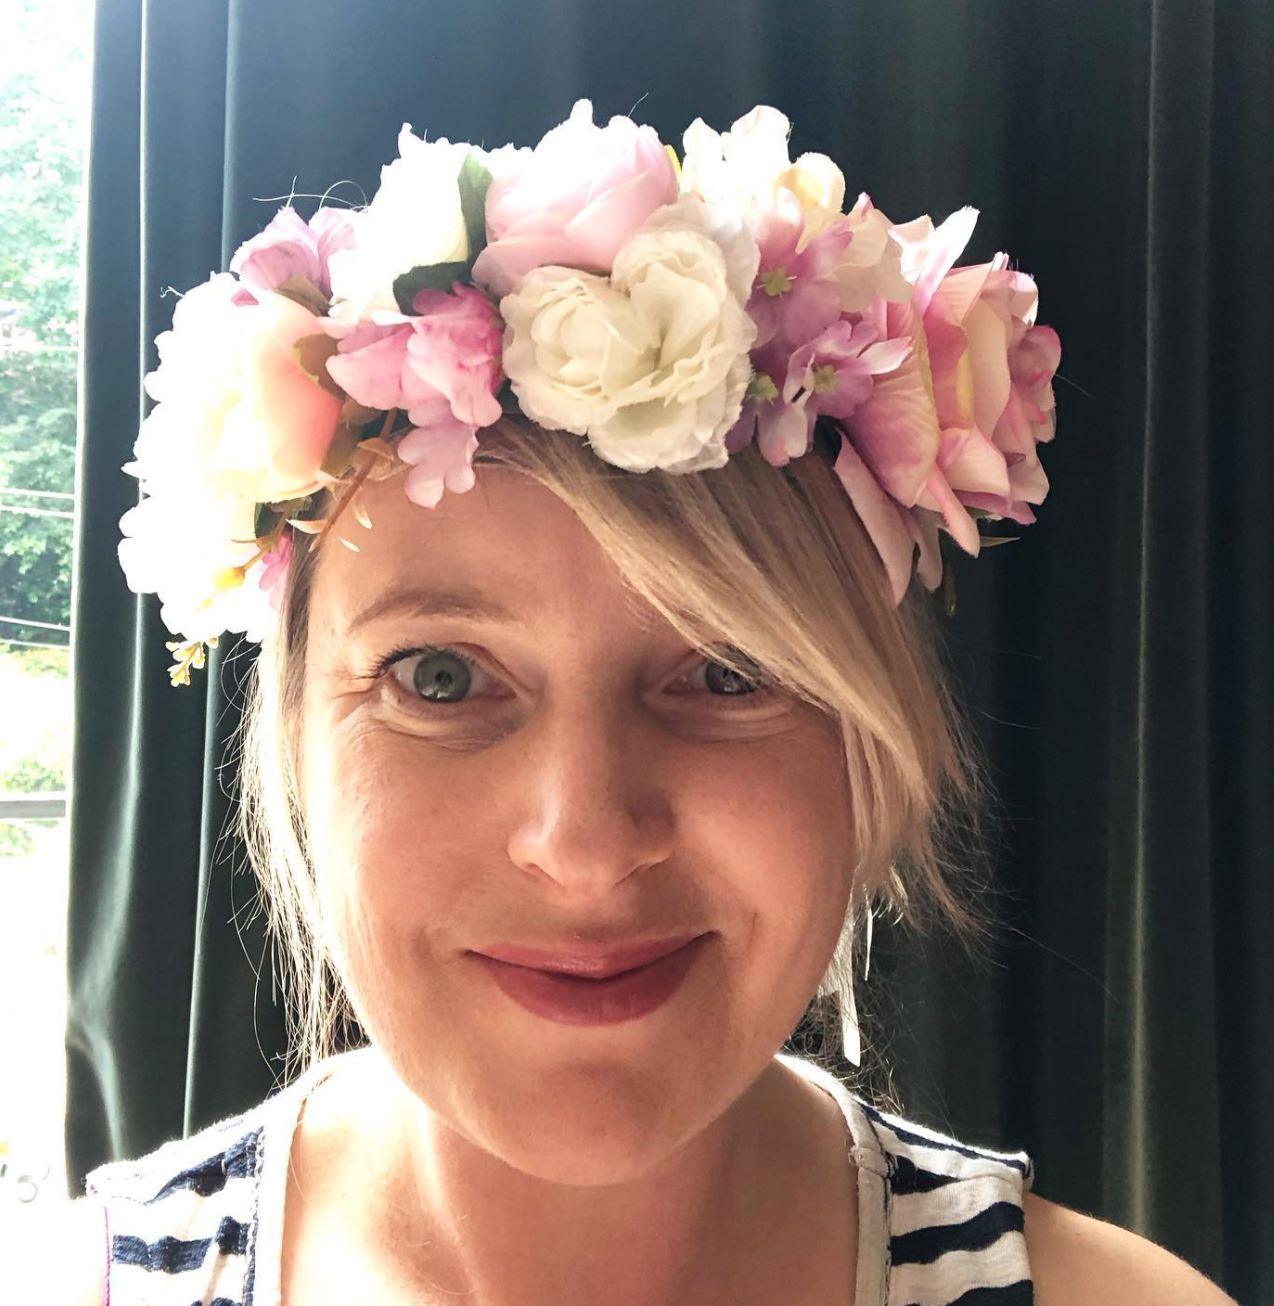 Above: Lucy Sharp modelling one of the floral headpieces from the Talking Tables range.